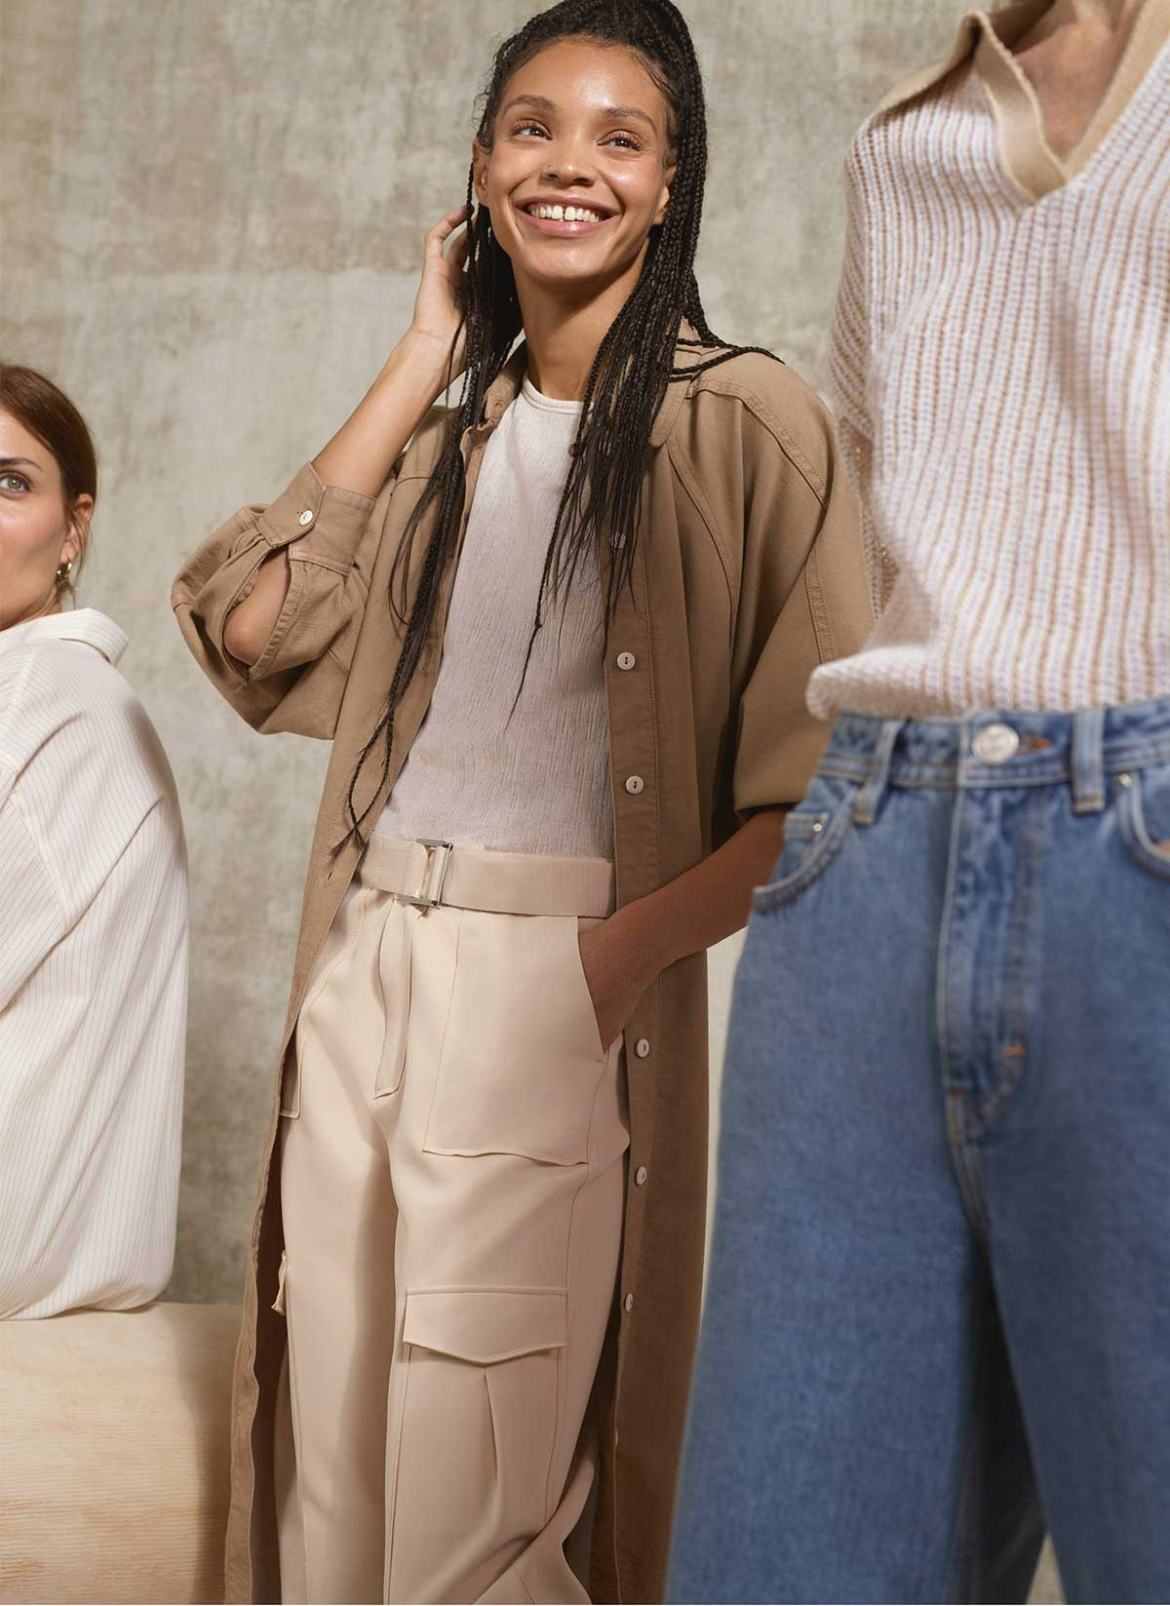 Zalando places emphasis on sustainability with new collection